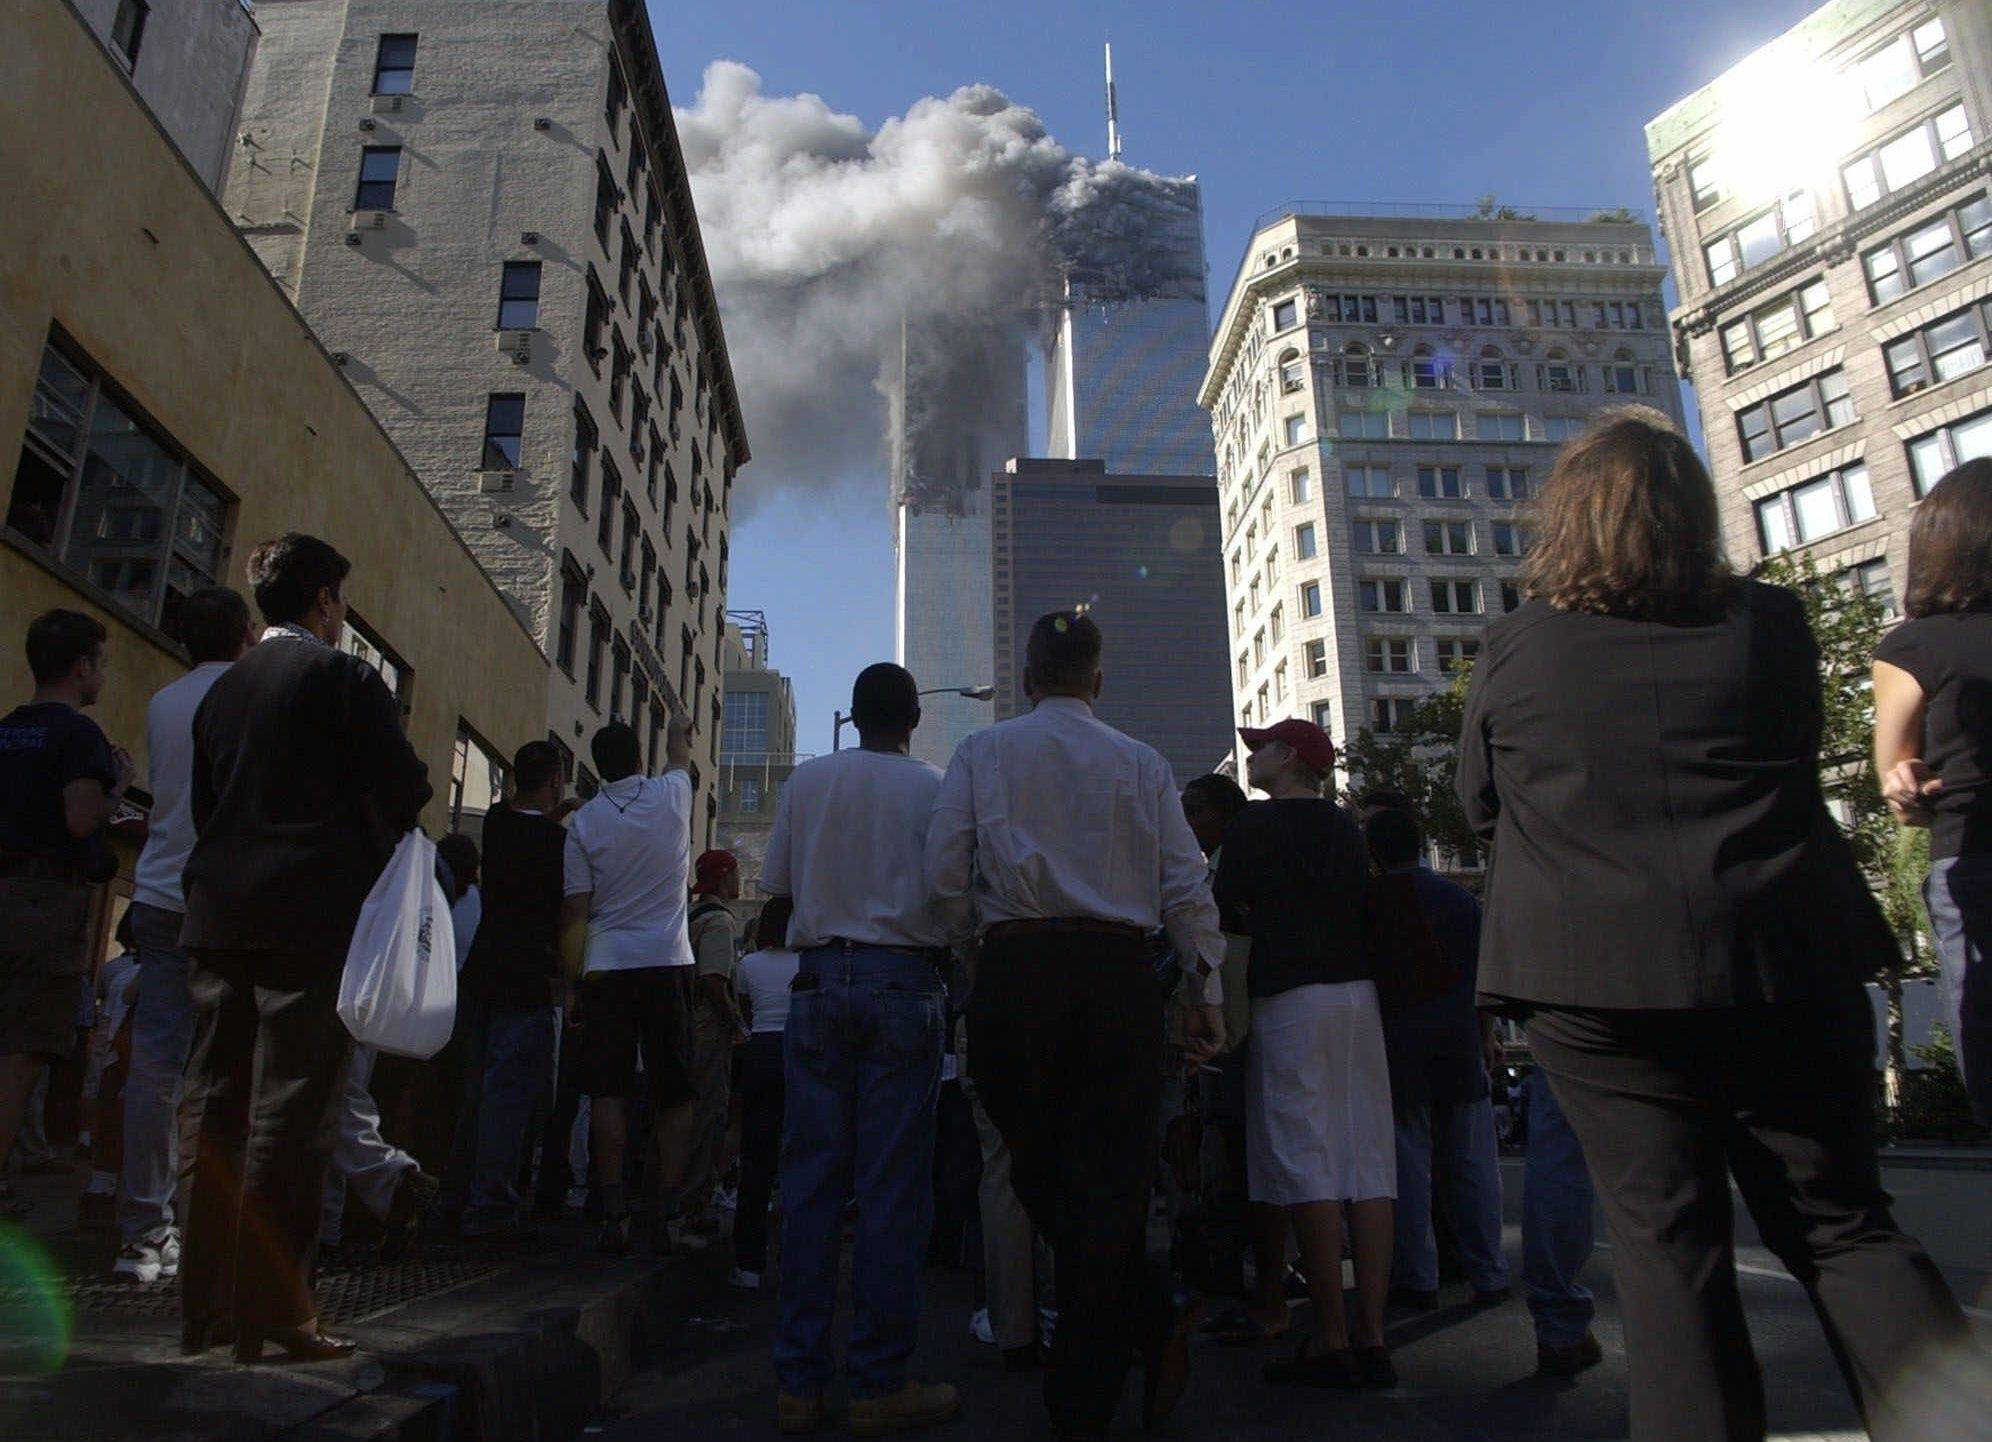 Pedestrians in lower Manhattan watch smoke rise from the World Trade Tower after the early morning terrorist attack on the New York landmark. Television brought the 2001 attacks to the world in real time, and forever linked the thousands who lived through it and the millions who watched.